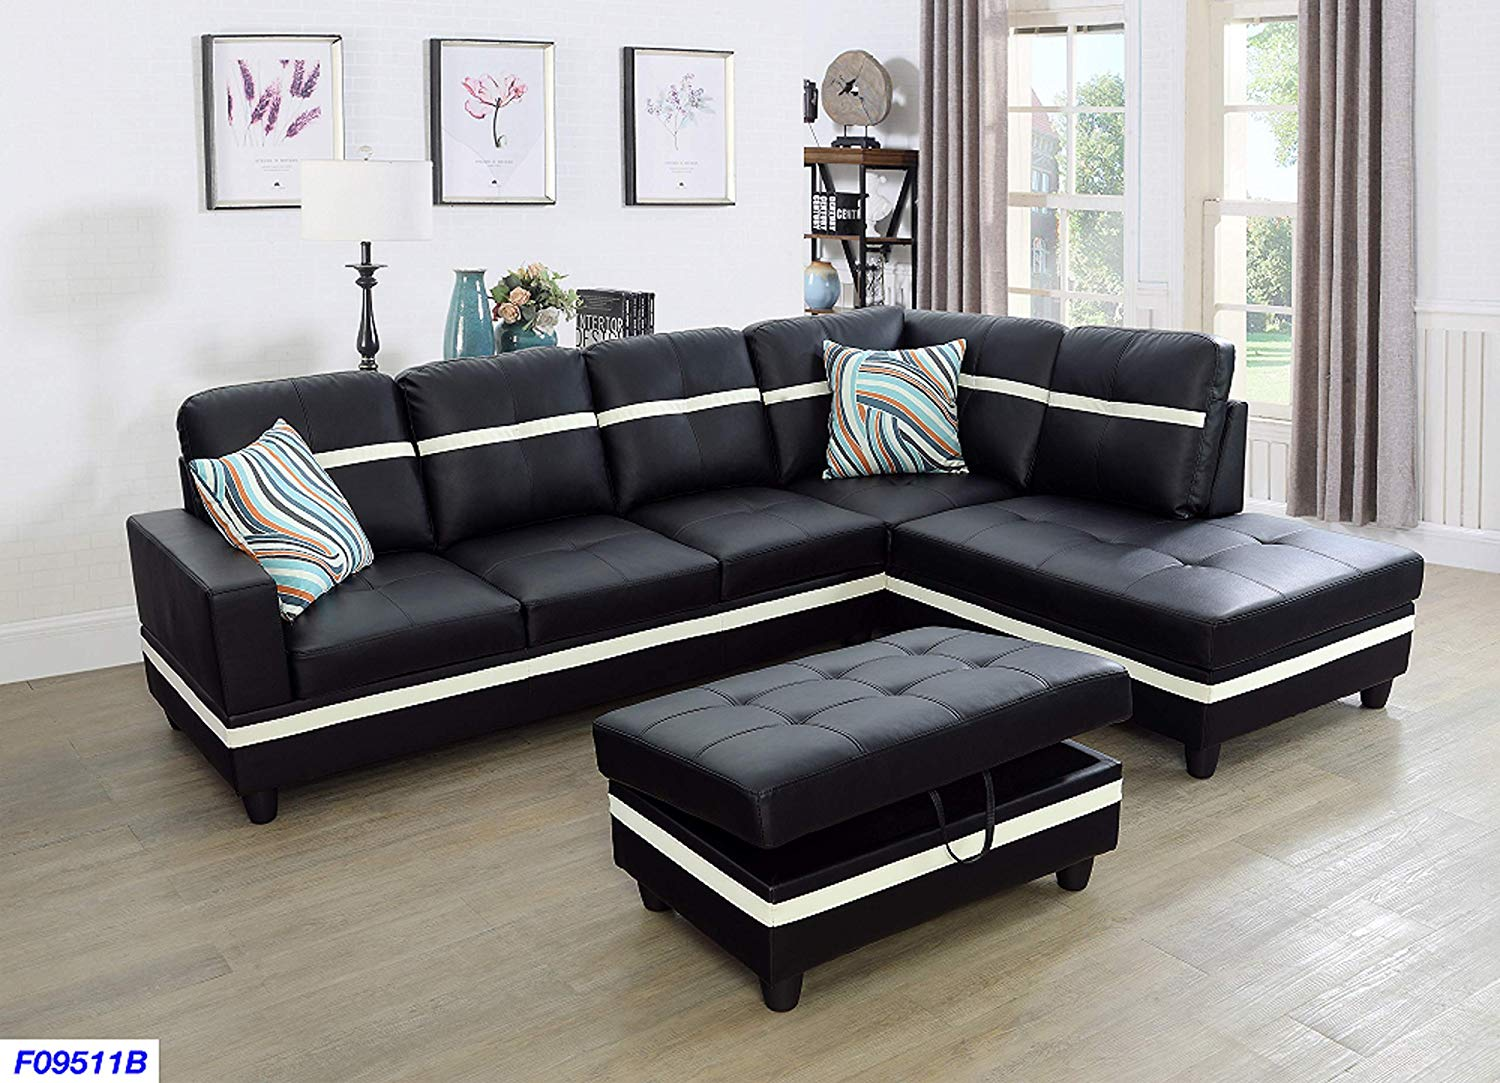 Beverly Fine Funiture SHPO9511A-3PC Sectional Sofa Set, Black with White Stripe